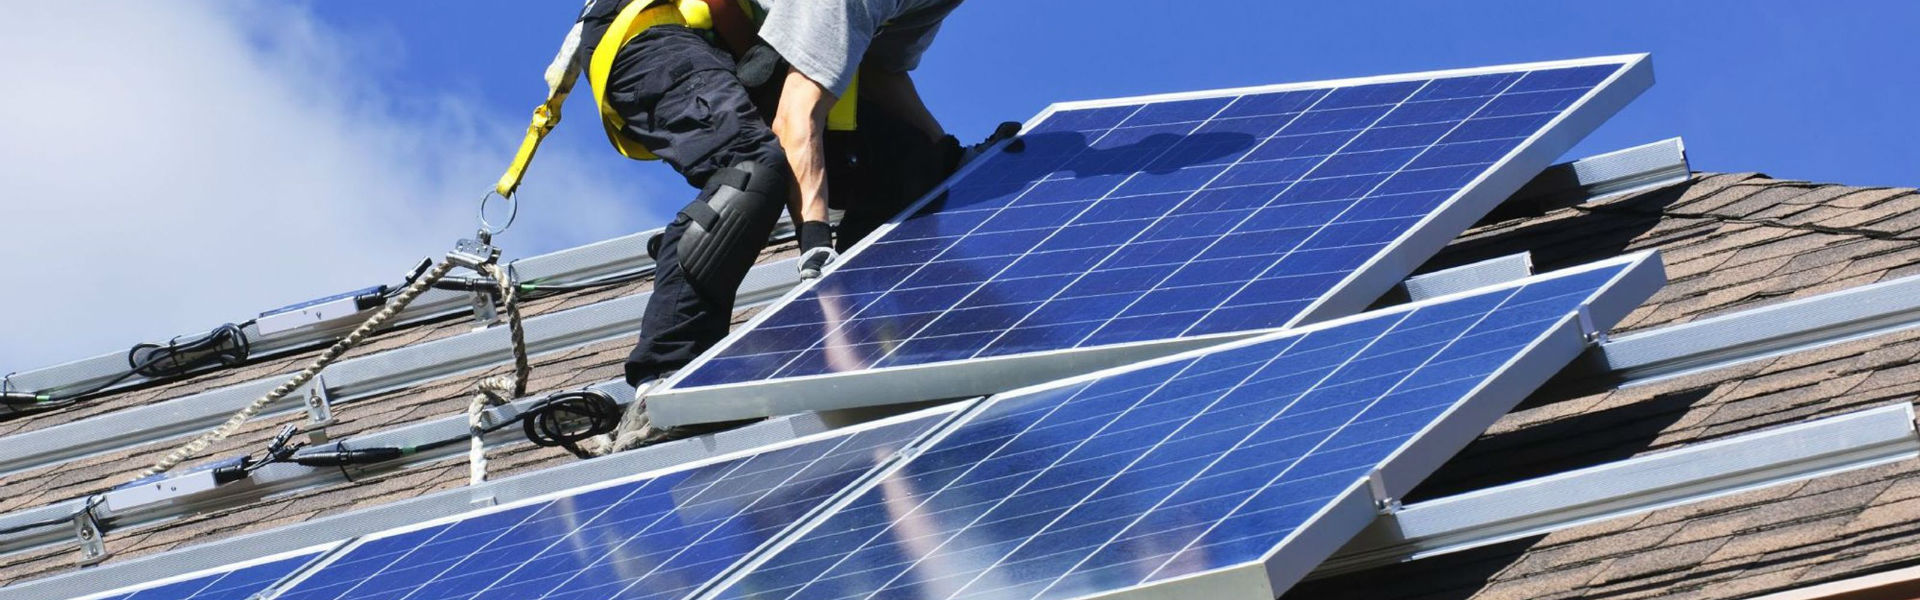 sec-solar-panels_electrical-contractor_service_installation_repair-brooklyn-new-york_zip-code-11218